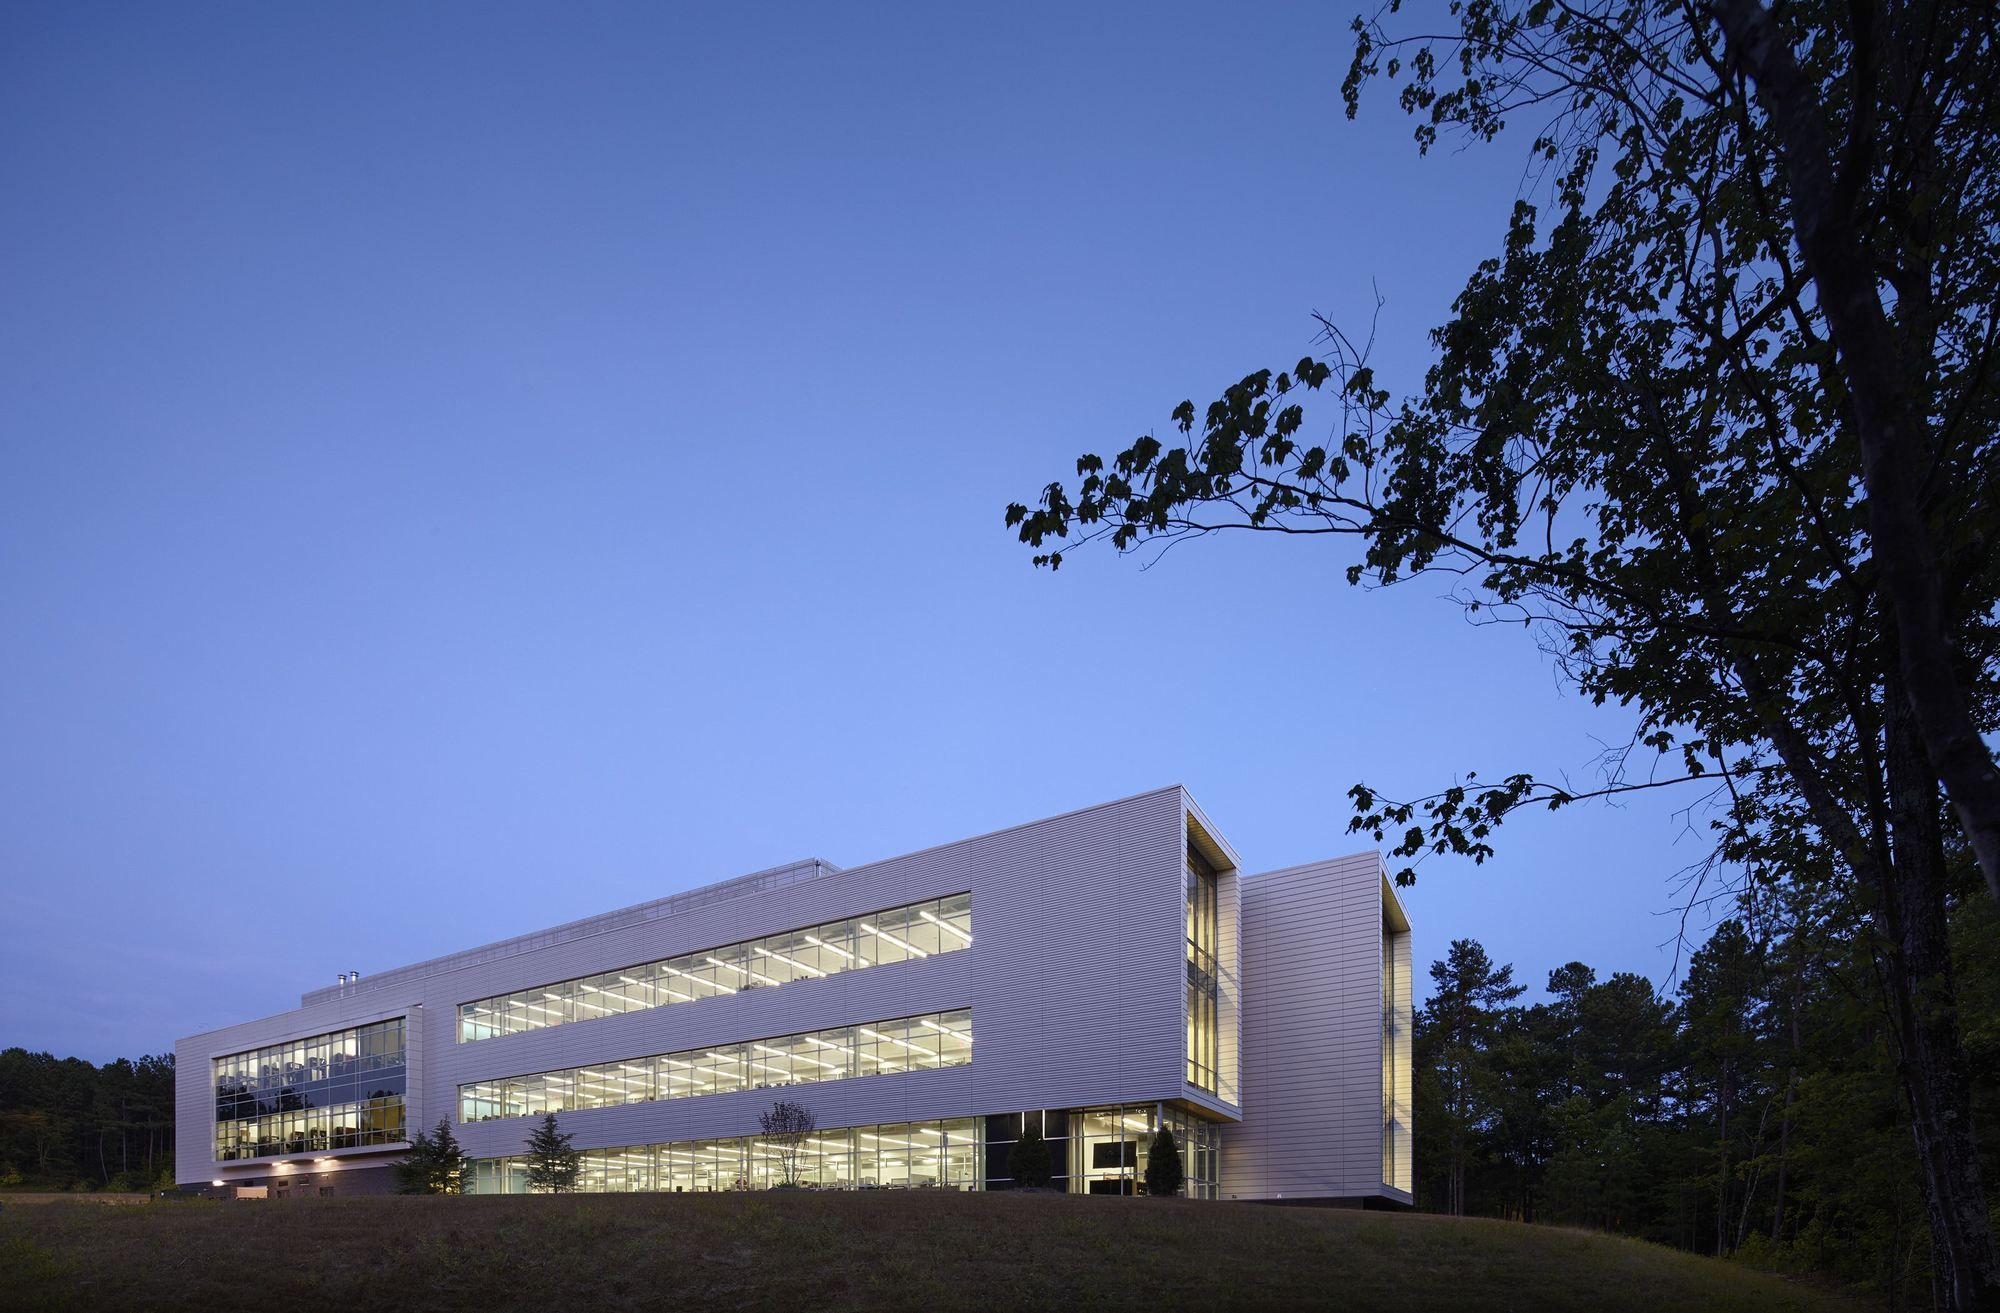 Architecture Gallery of Bioprocess Innovation Center